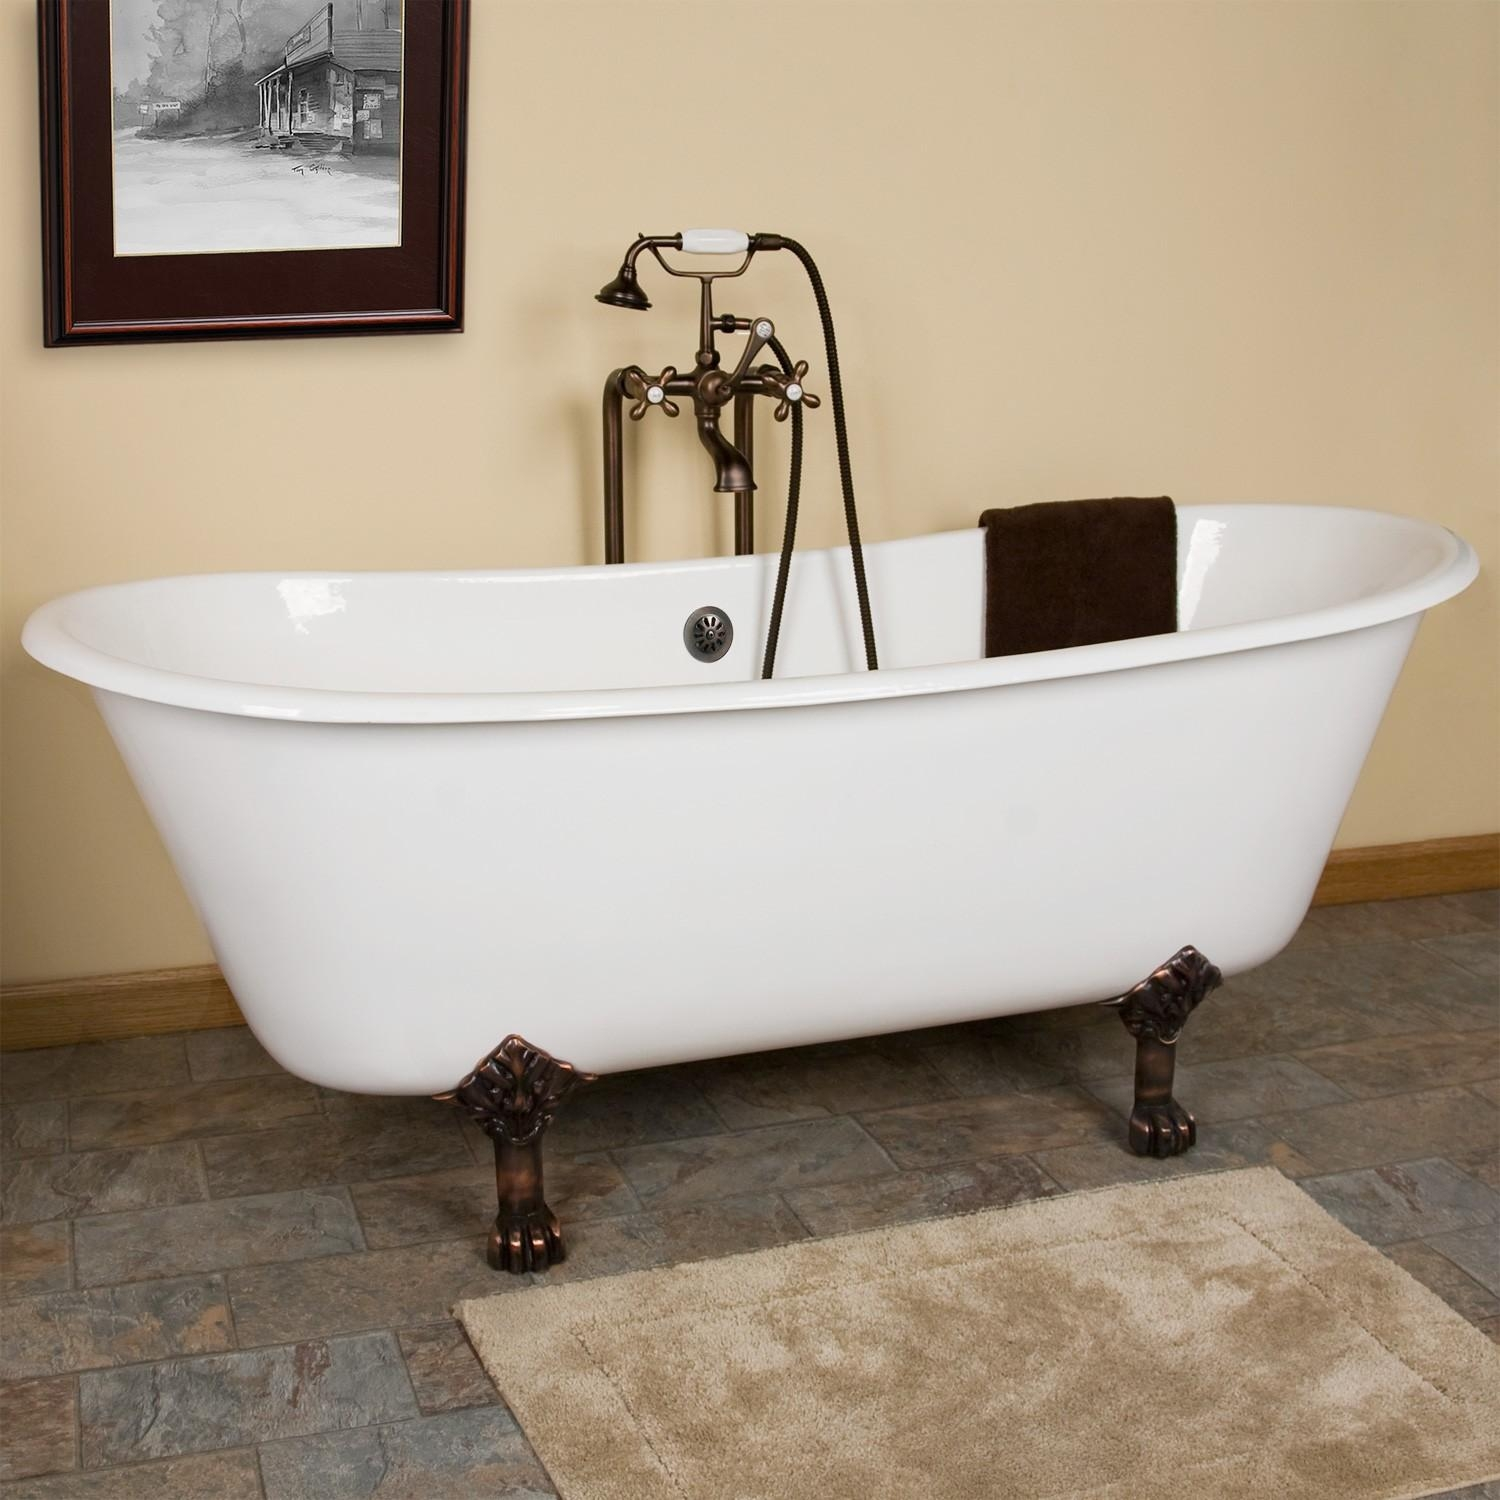 Cast Iron Clawfoot Tub Ideas : How To Paint A Cast Iron Clawfoot Throughout Clawfoot Tub Sofas (Image 5 of 20)